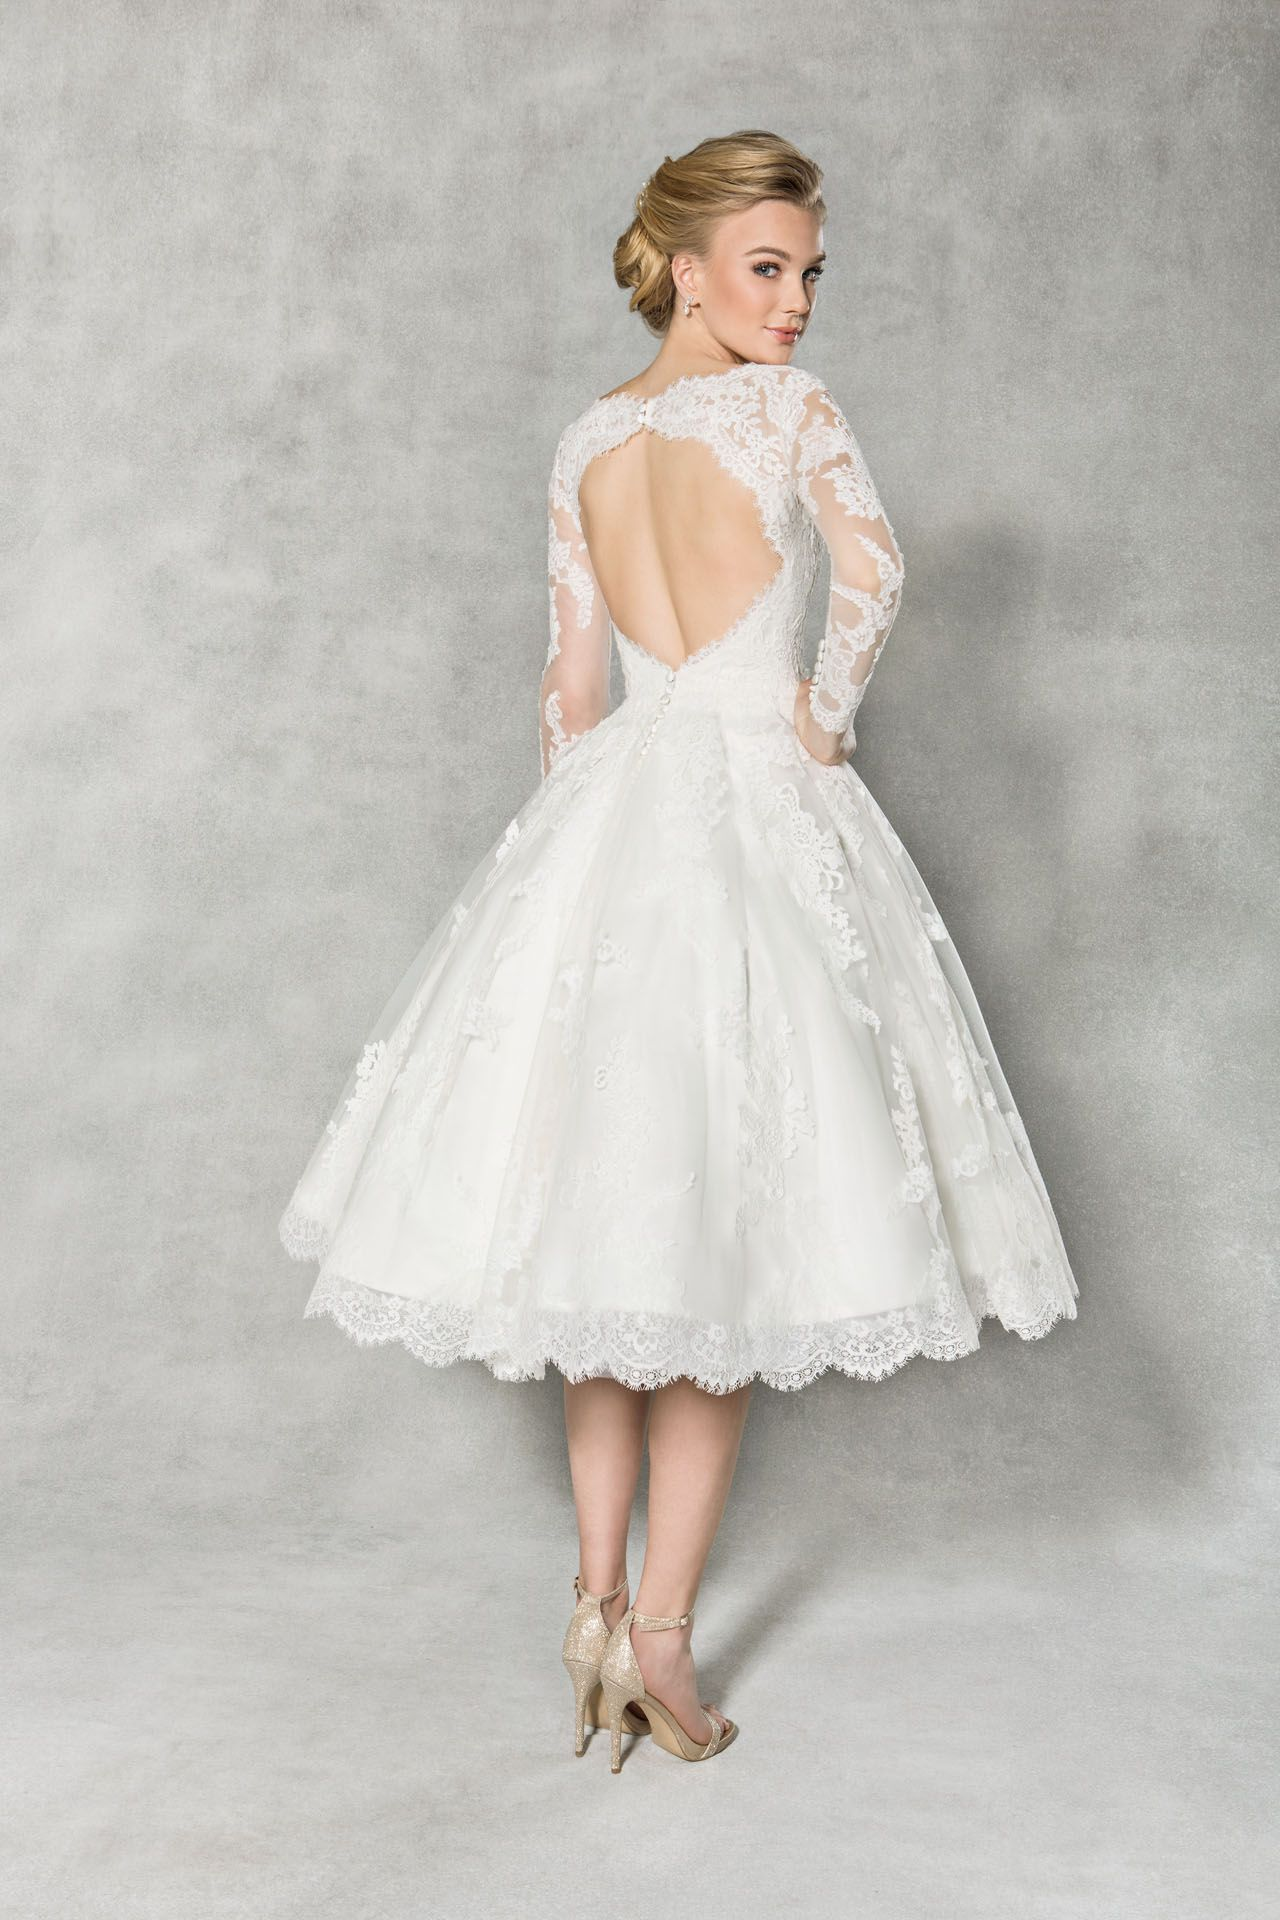 c1cd466b3d90 We think you're going to love this vintage tea length wedding dress  'Arlington'. Delicate lace adorns the sleeves, finished with a stunning  open back